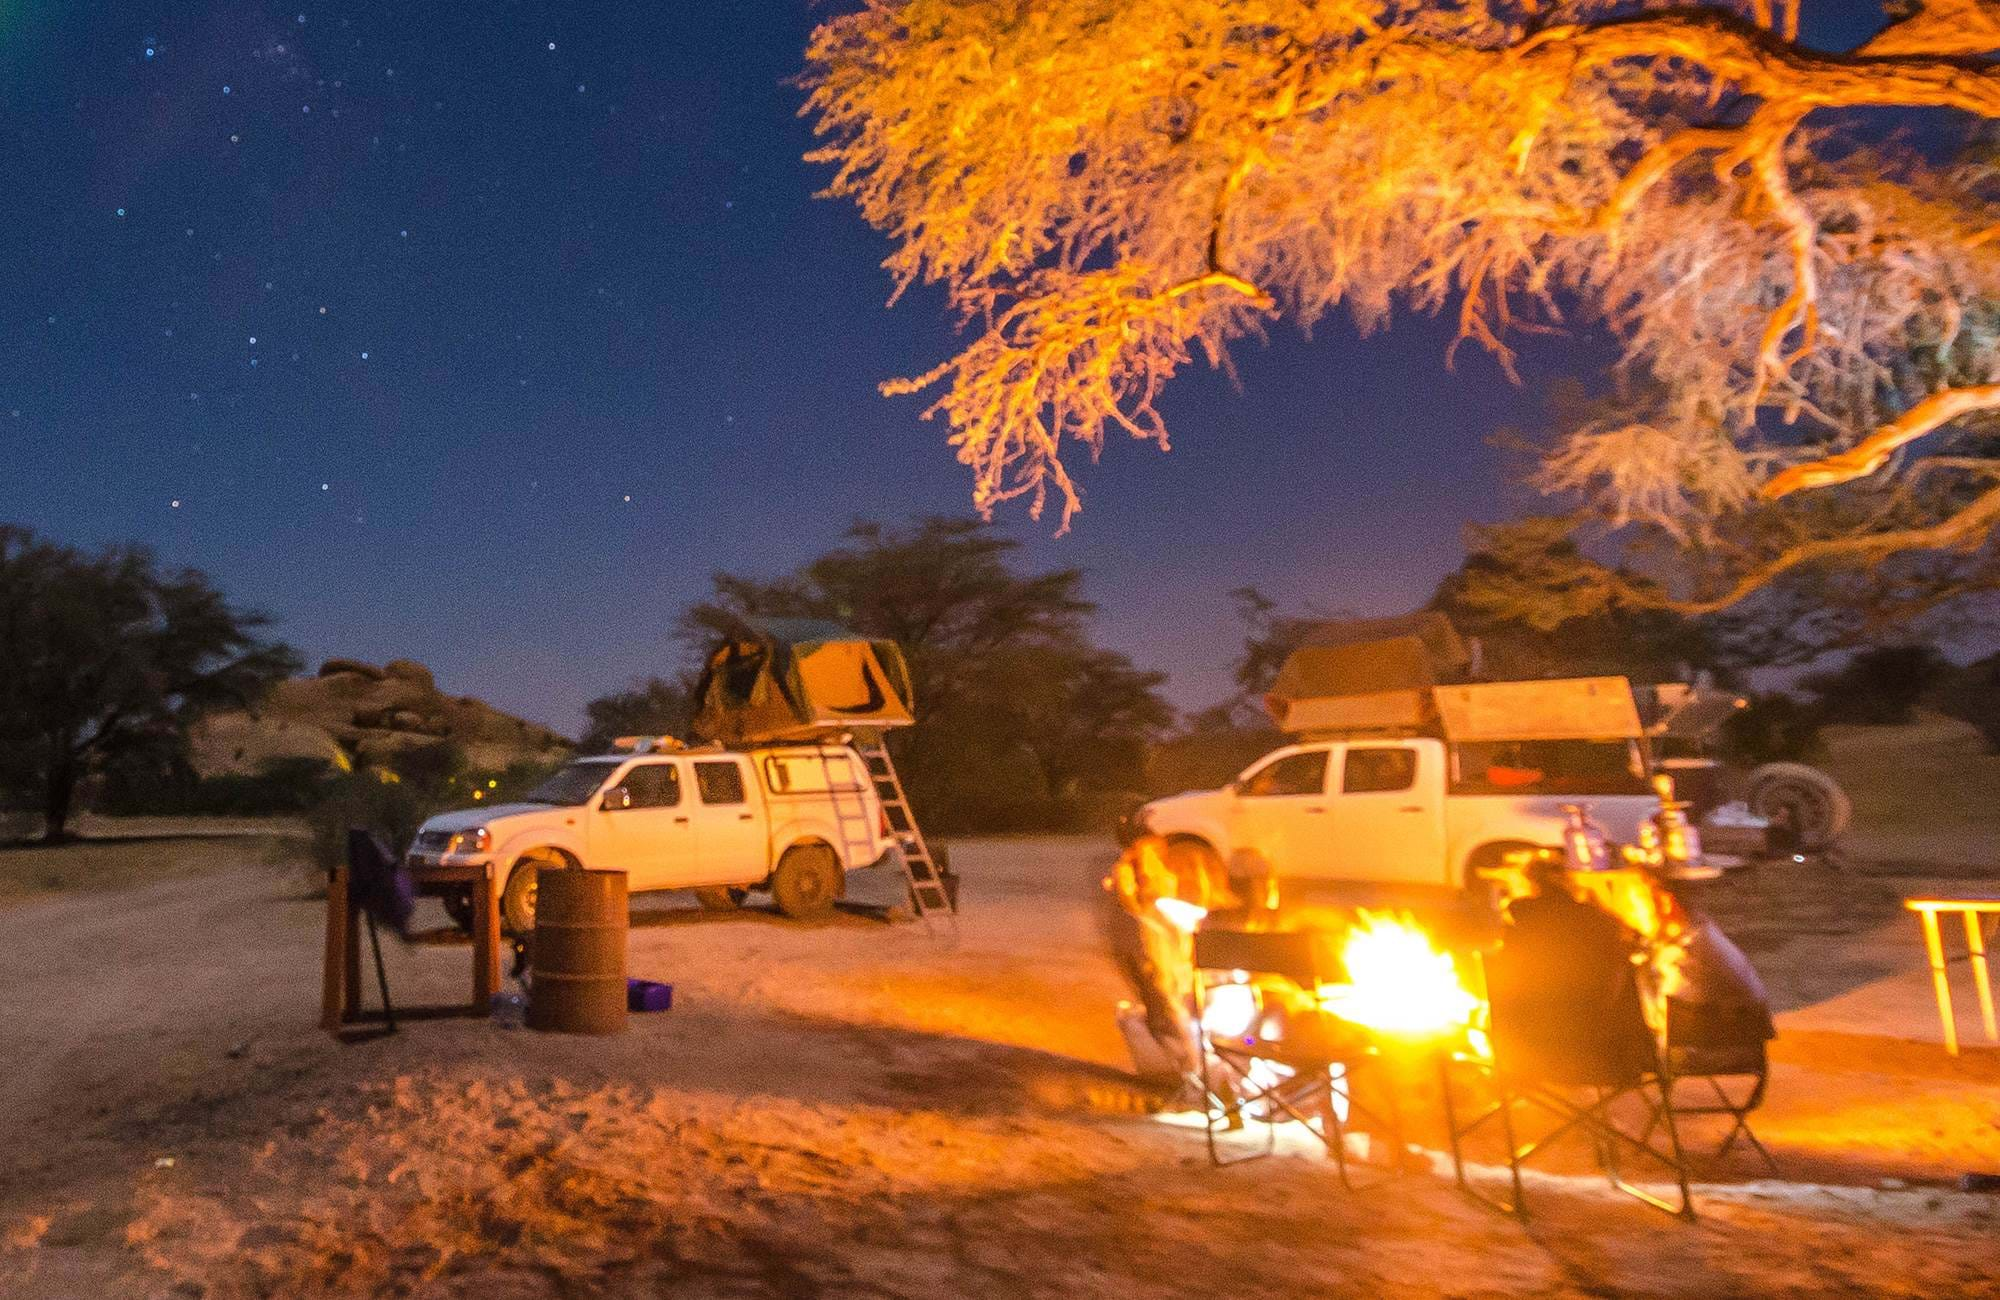 namibia-campervan-night-camp-bonfire-under-trees